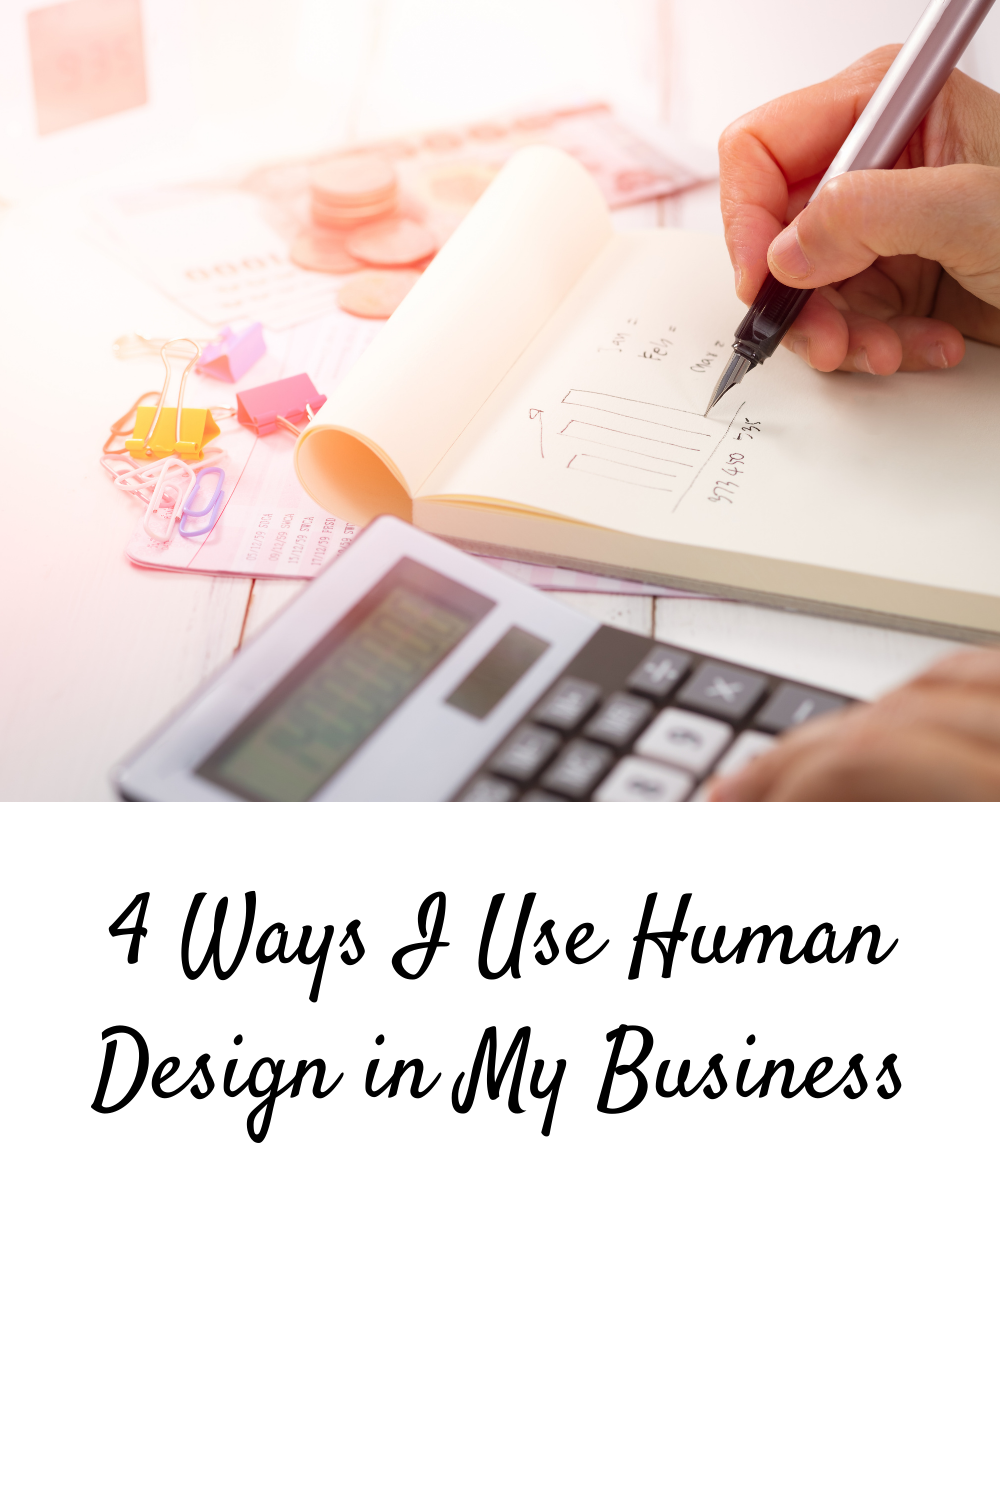 4 Way I Use Human Design in My Business